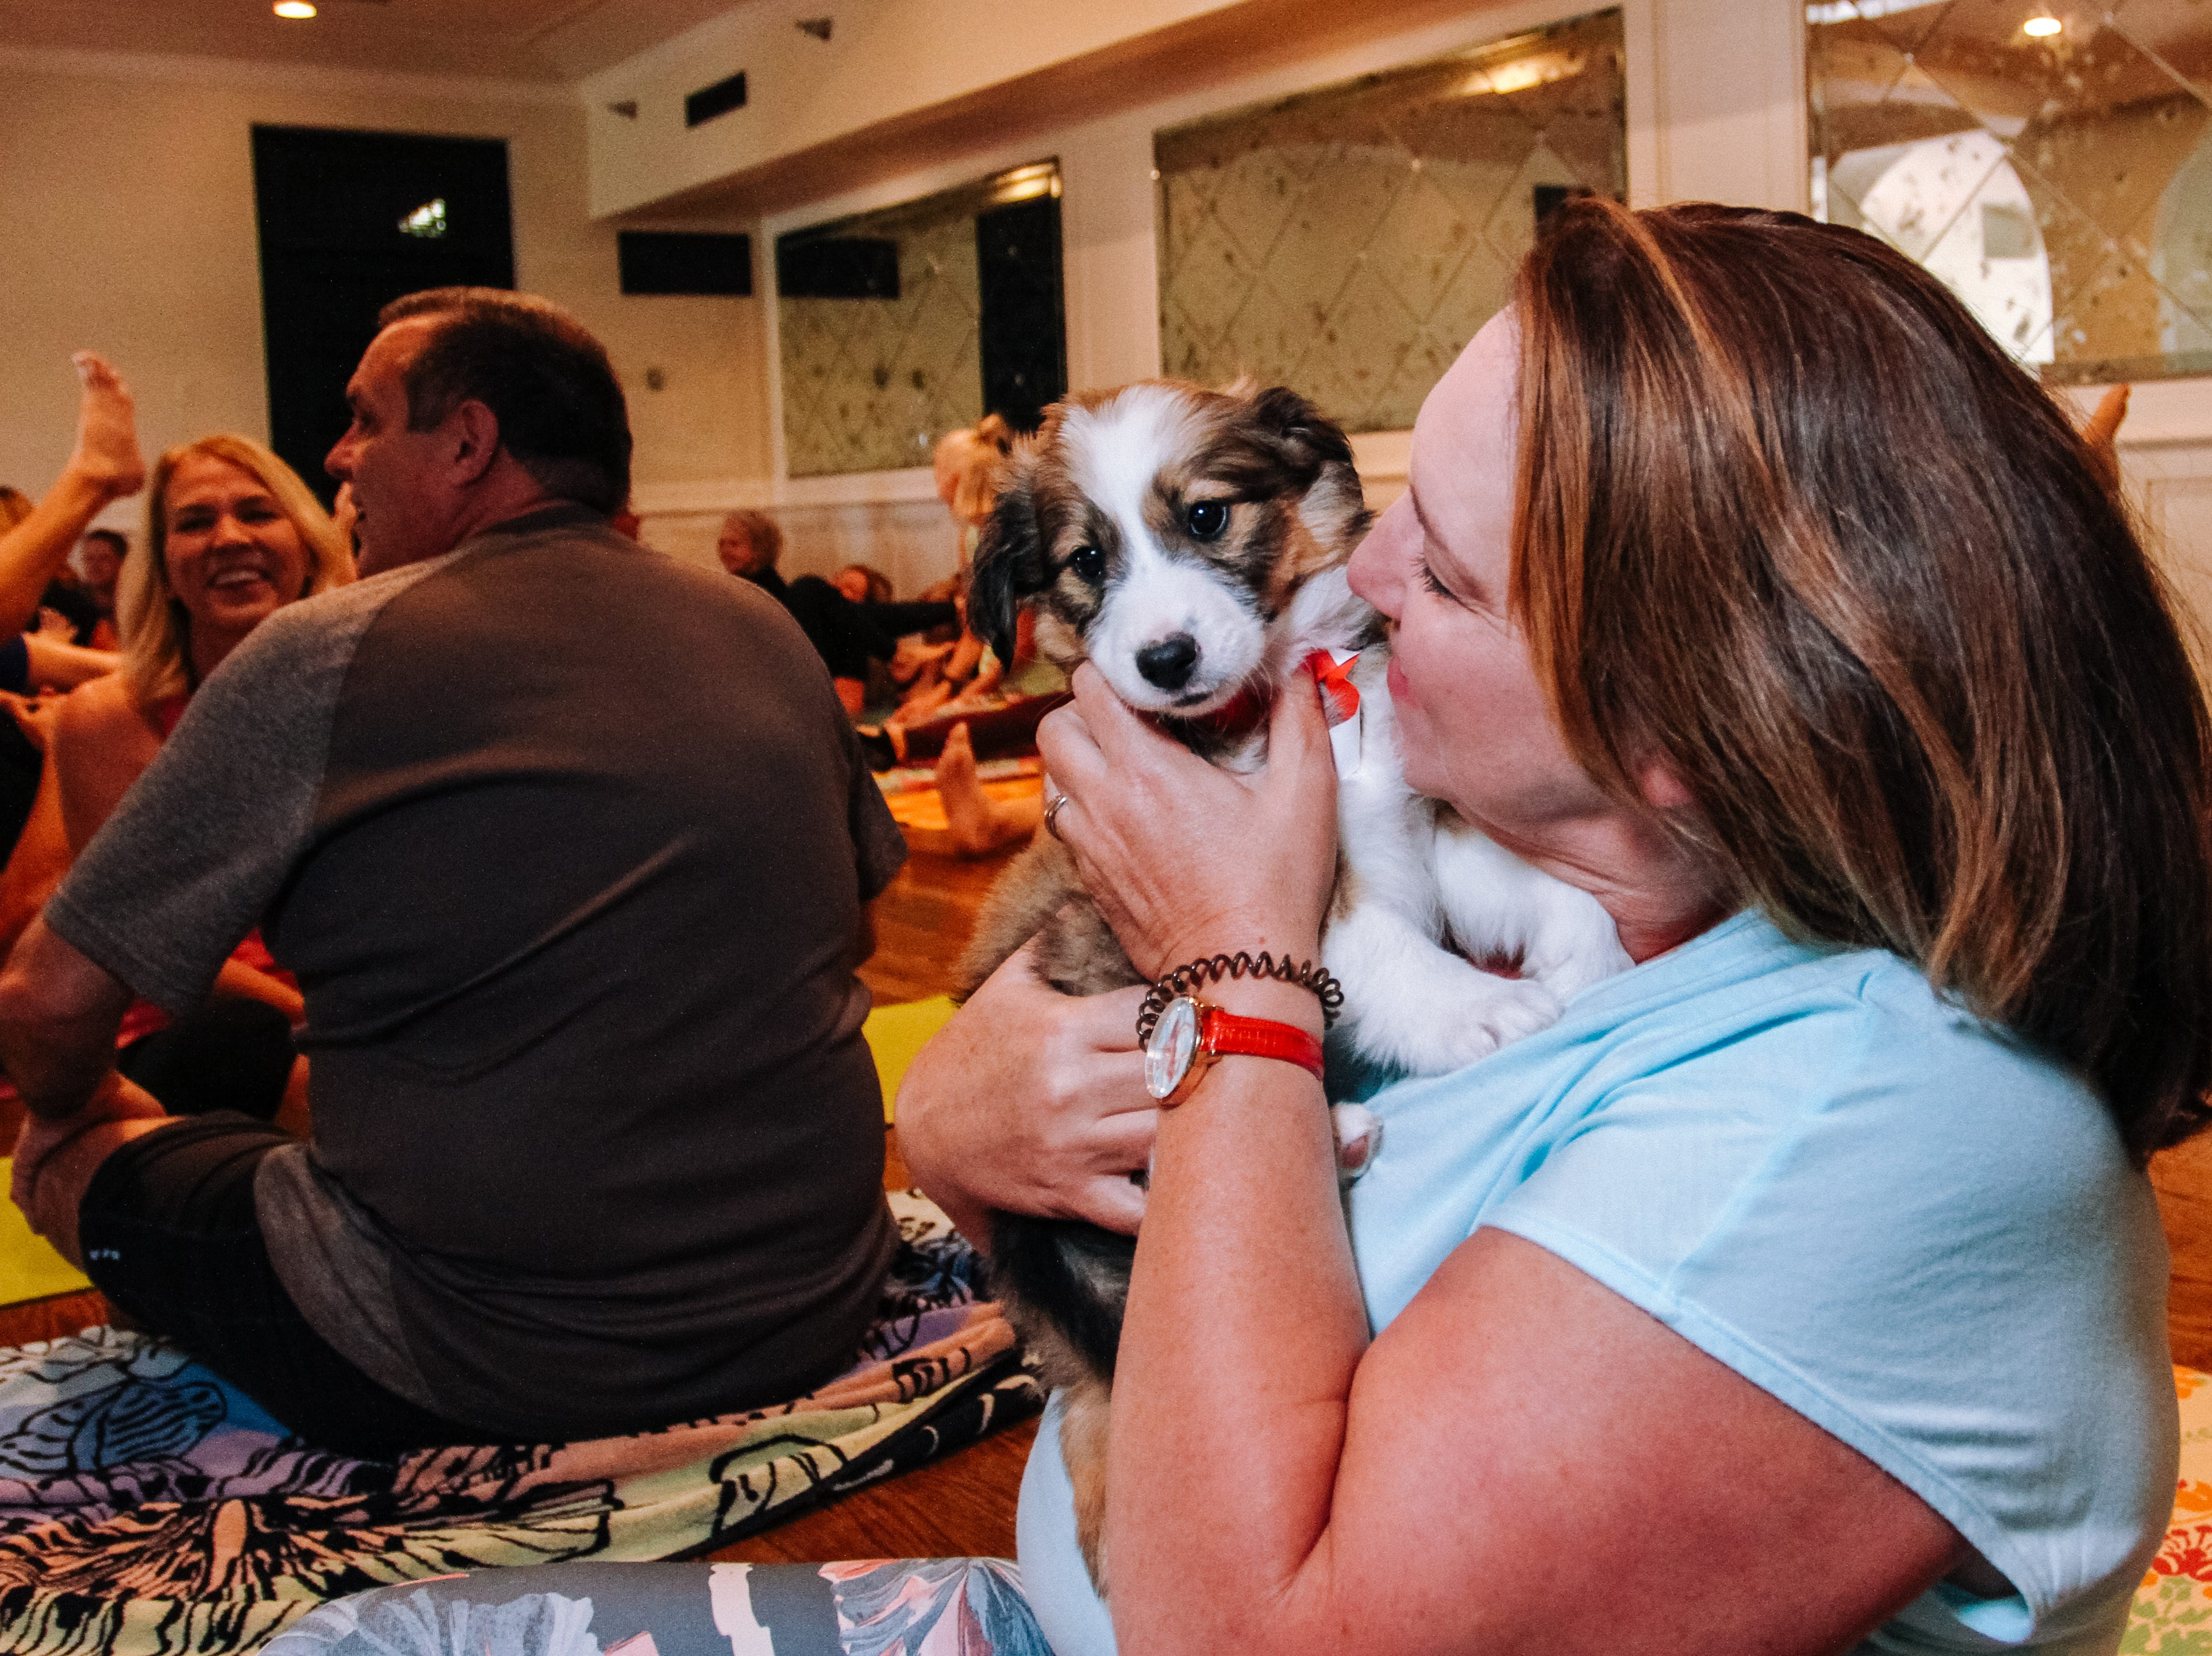 Amber Sangan plays with puppies at Puppies, Pilates and Prosecco, an event hosted by Almost There Foster Care at the Wrigley Mansion in Phoenix on April 13, 2019.